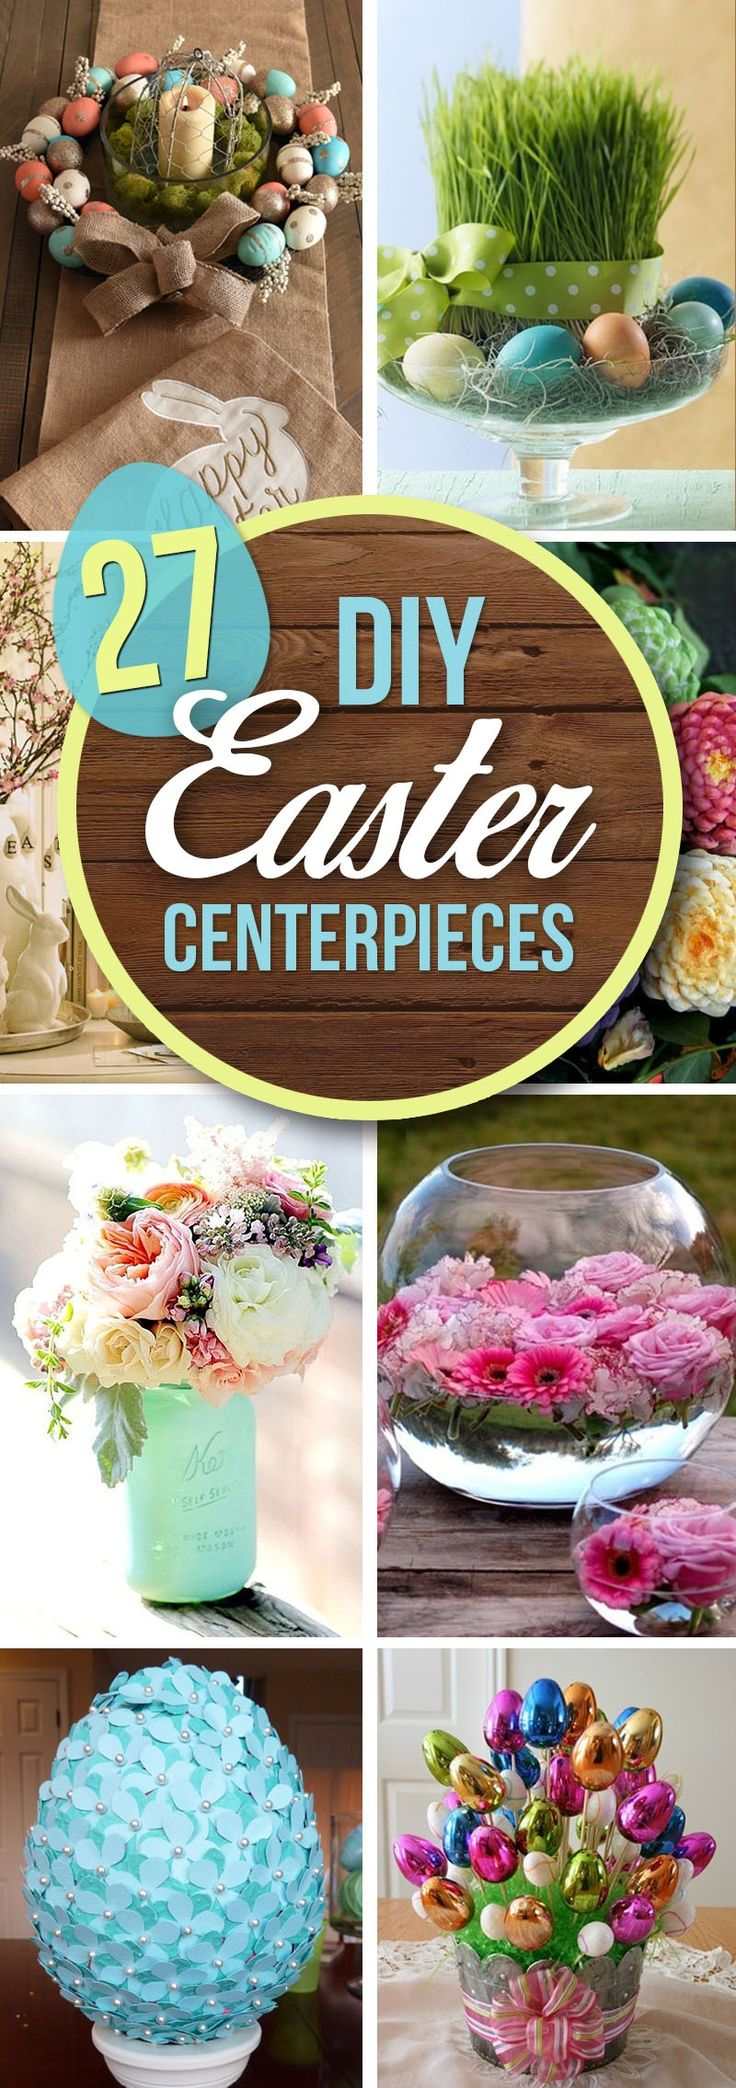 Easter doesn't always get the credit it deserves in terms of decorative ideas, but there are a number of editorial-worthy DIY Easter centerpiece decorations to suit every springtime at-home style. Shabby-chic décor has been making waves for a number of years now, taking its inspiration from a va...